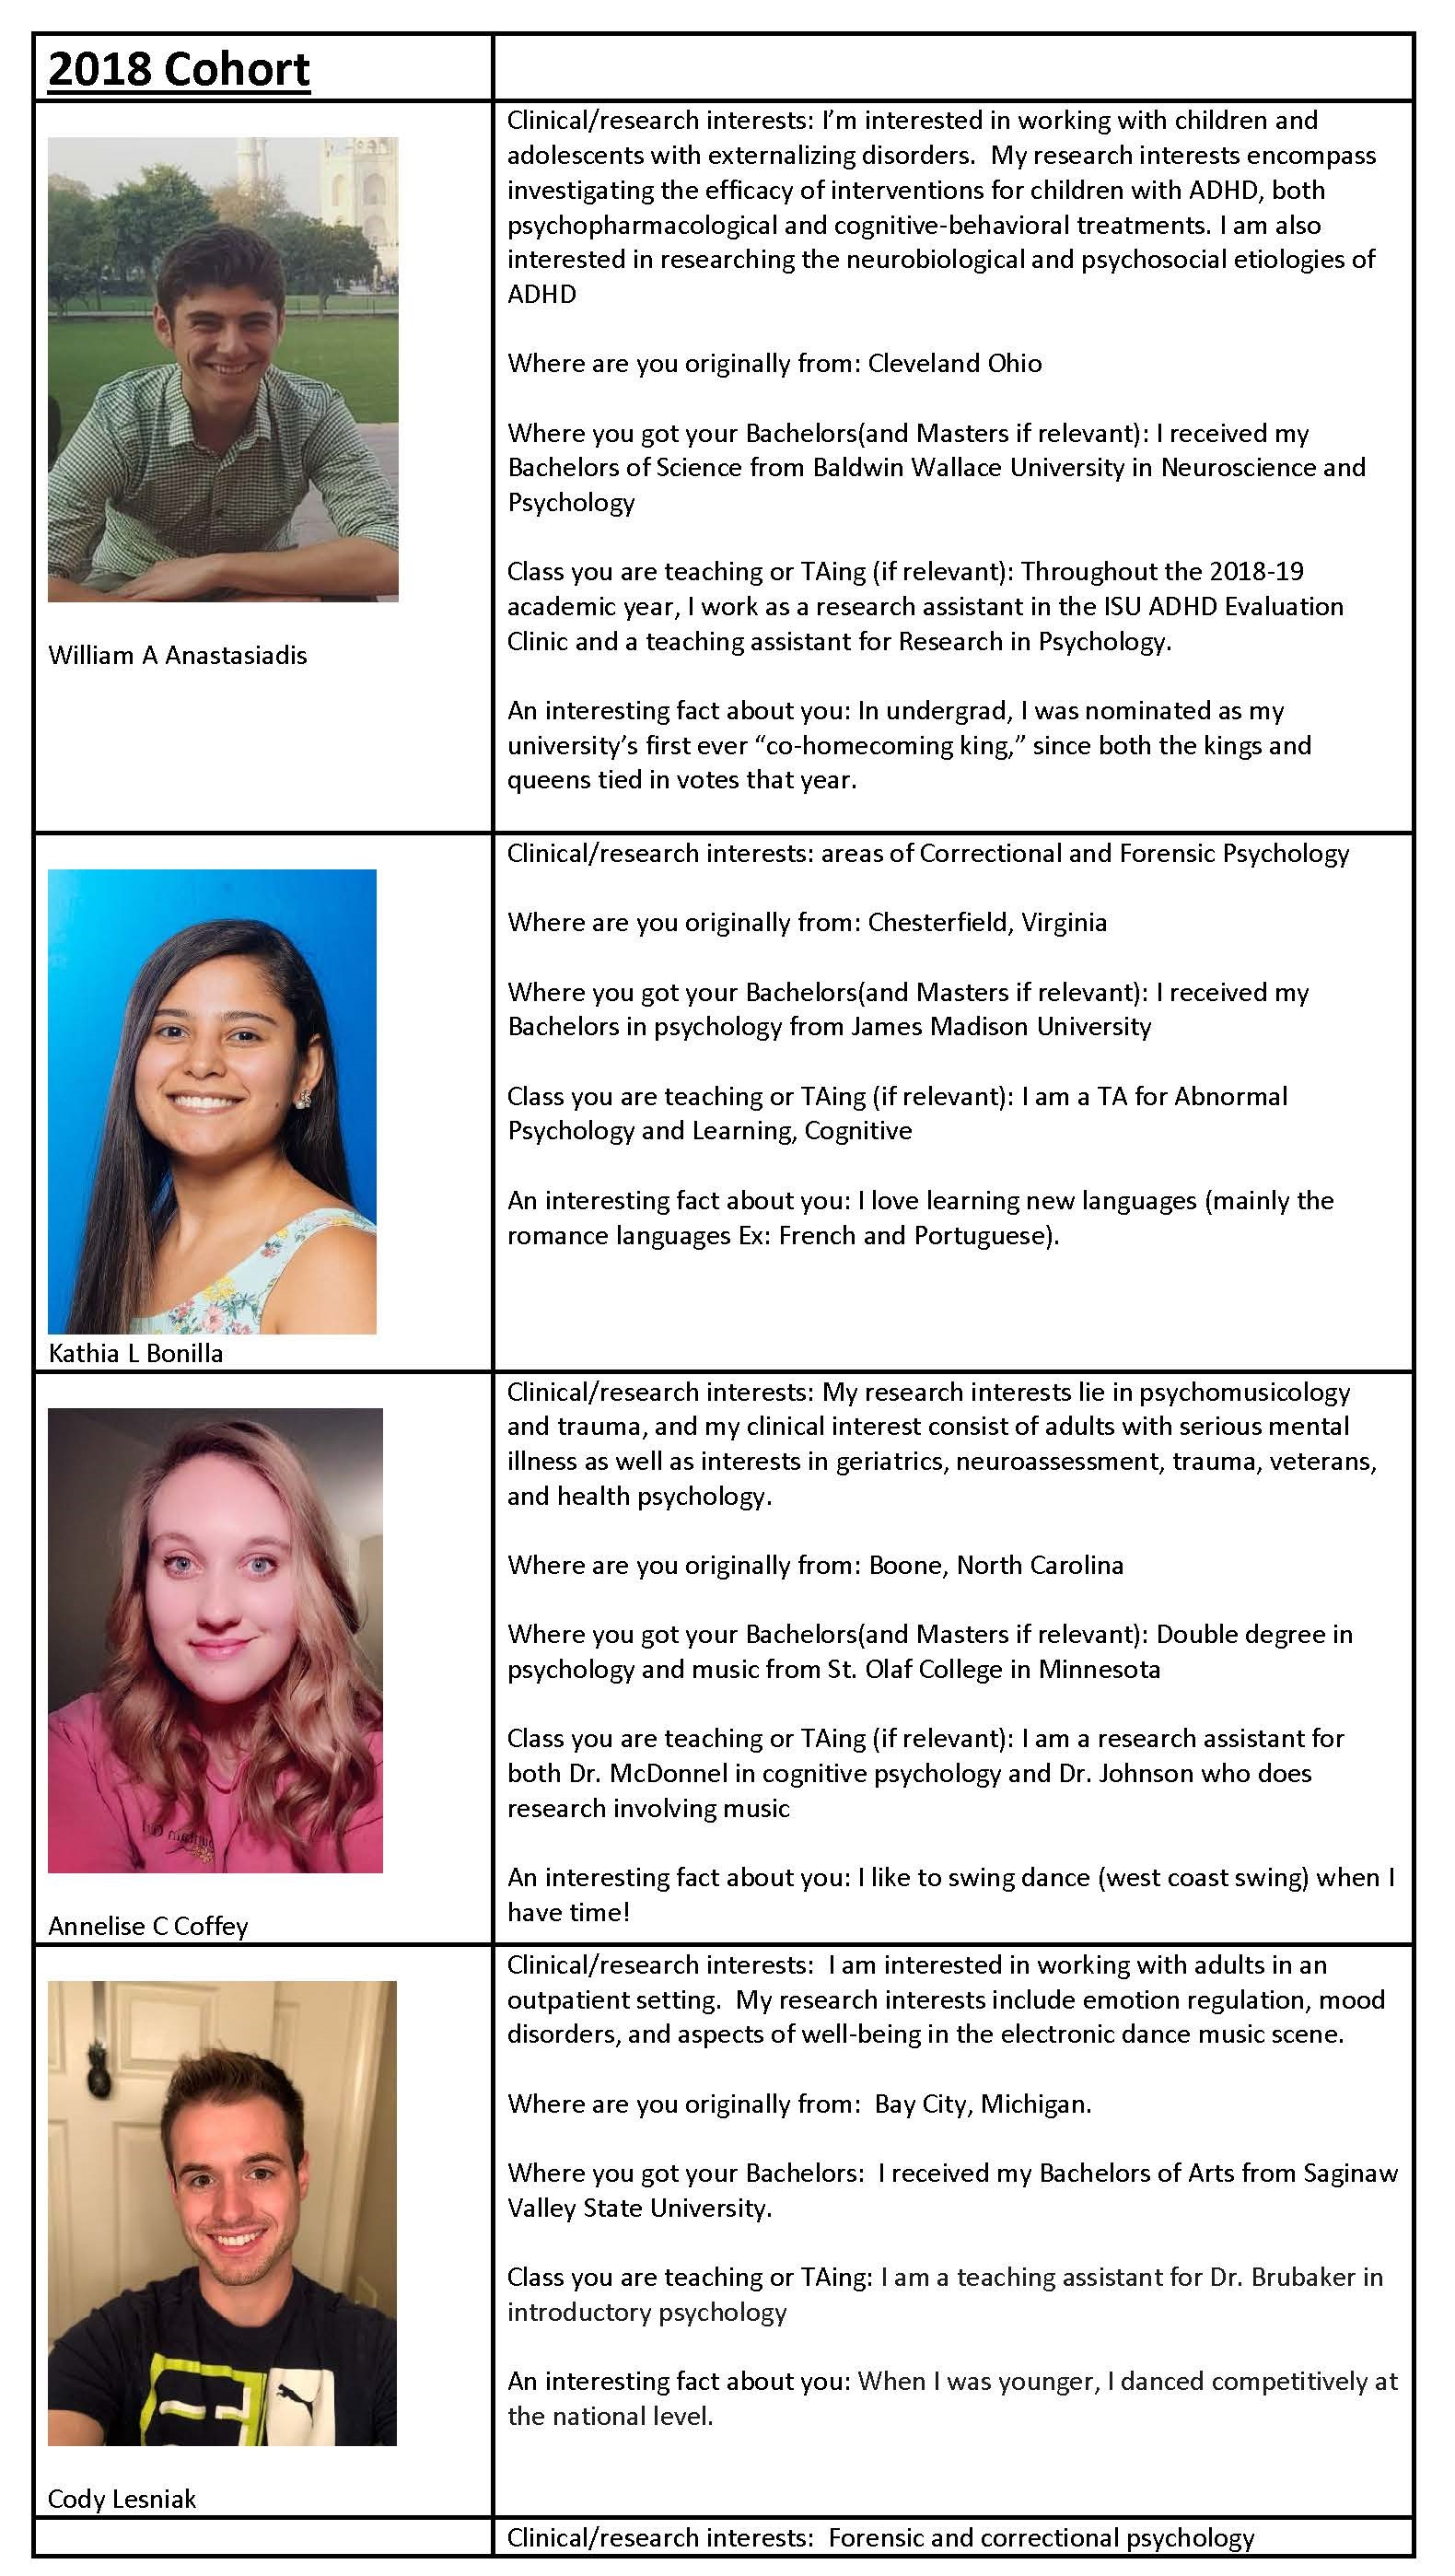 2018 Cohort 1st Years Page 1